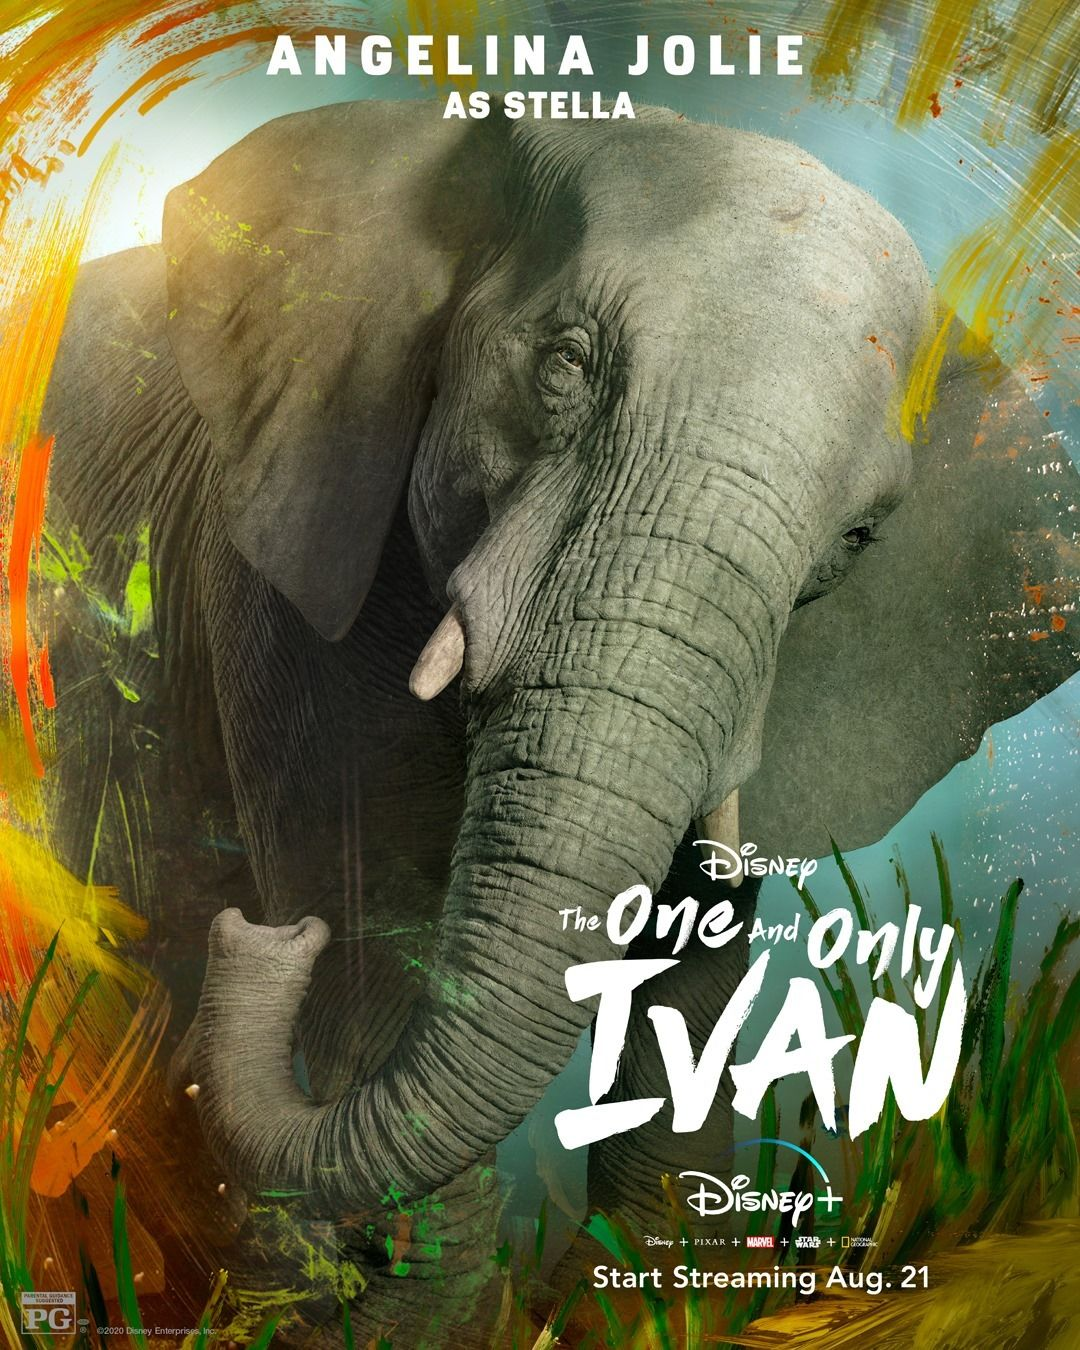 The One and Only Ivan Poster 6: Extra Large Poster Image